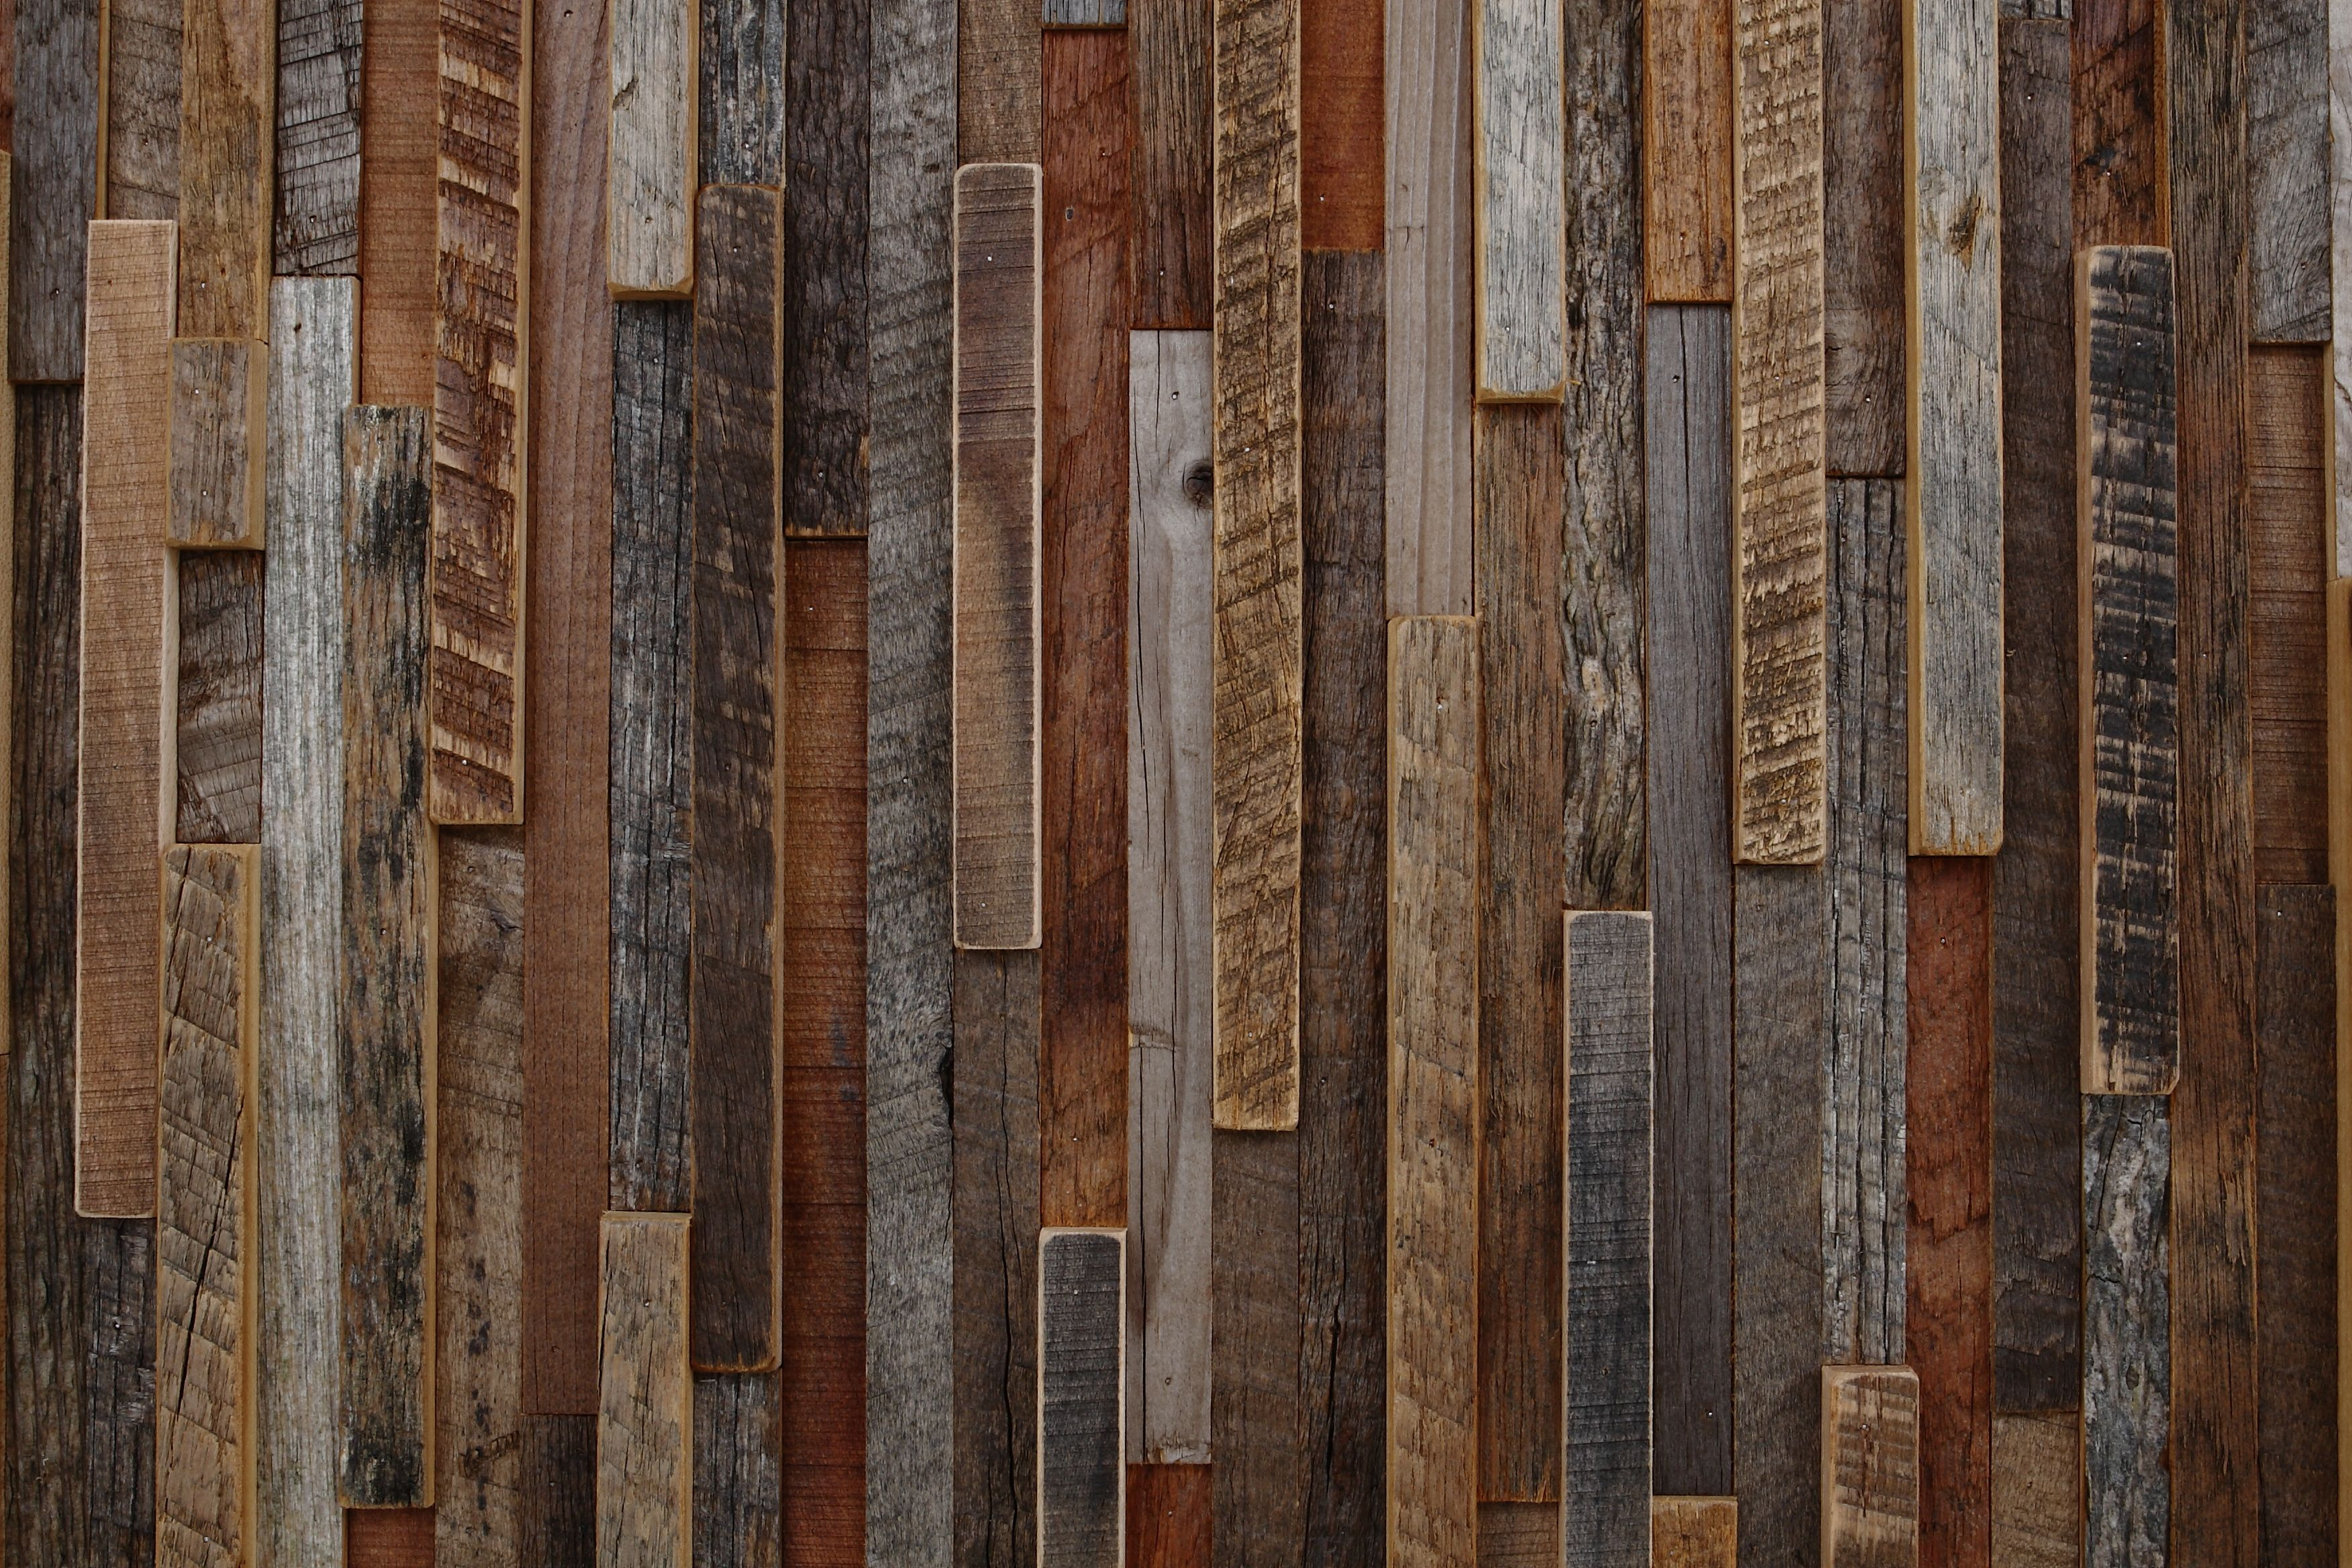 Hand Made Reclaimed Wood Wall Art Of Old Barnwood Diffe Sizes Available By Carpentercraig Custommade